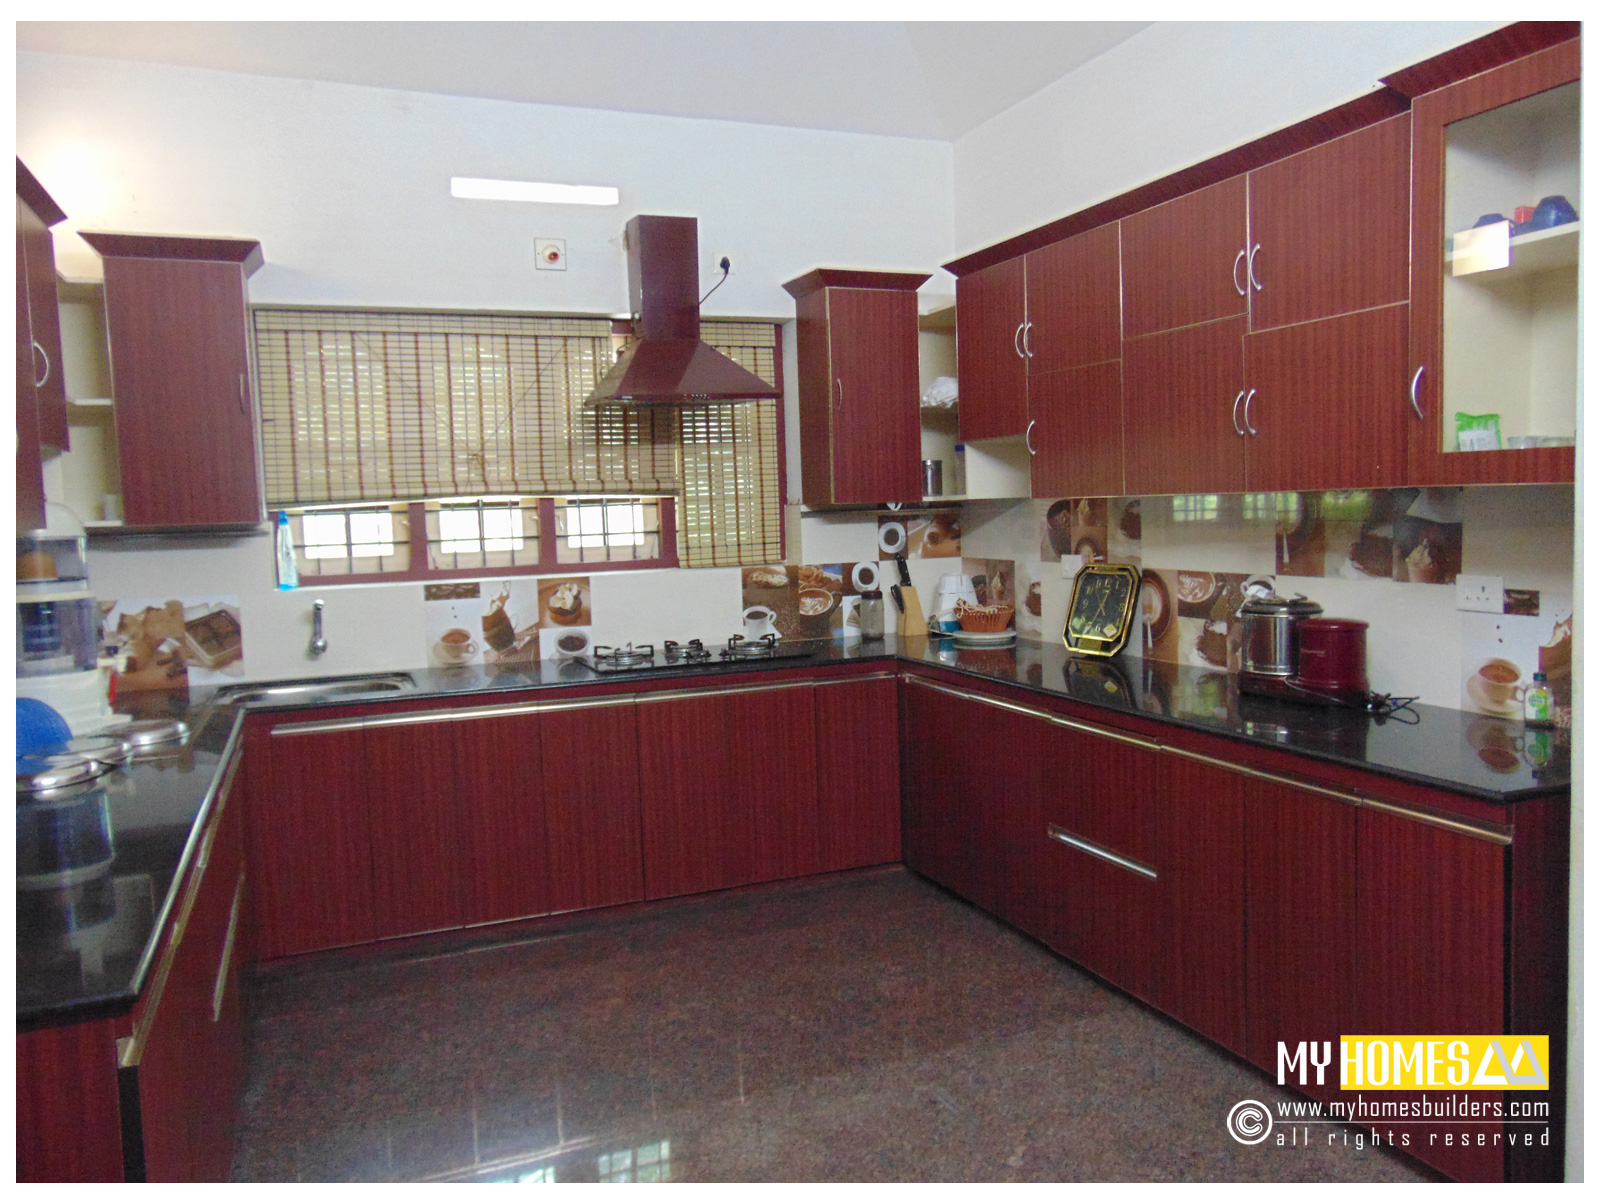 Budget house kerala home designers builder in thrissur india for Homey kitchen designs